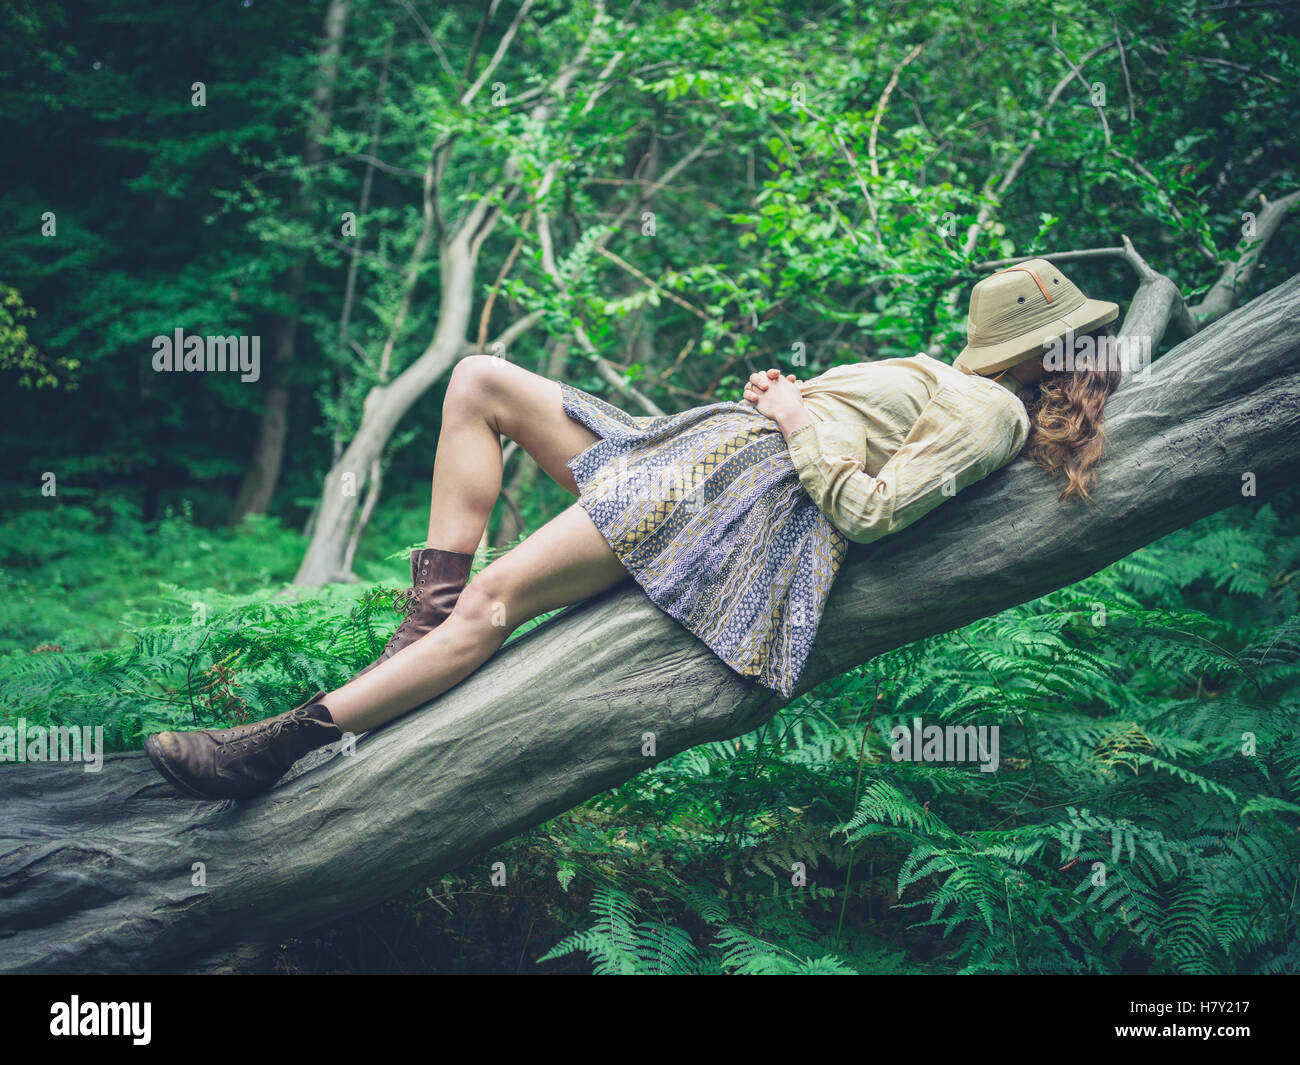 A young woman is lying on a fallen tree in the forest surrounded by ferns with a safari hat covering her face - Stock Image